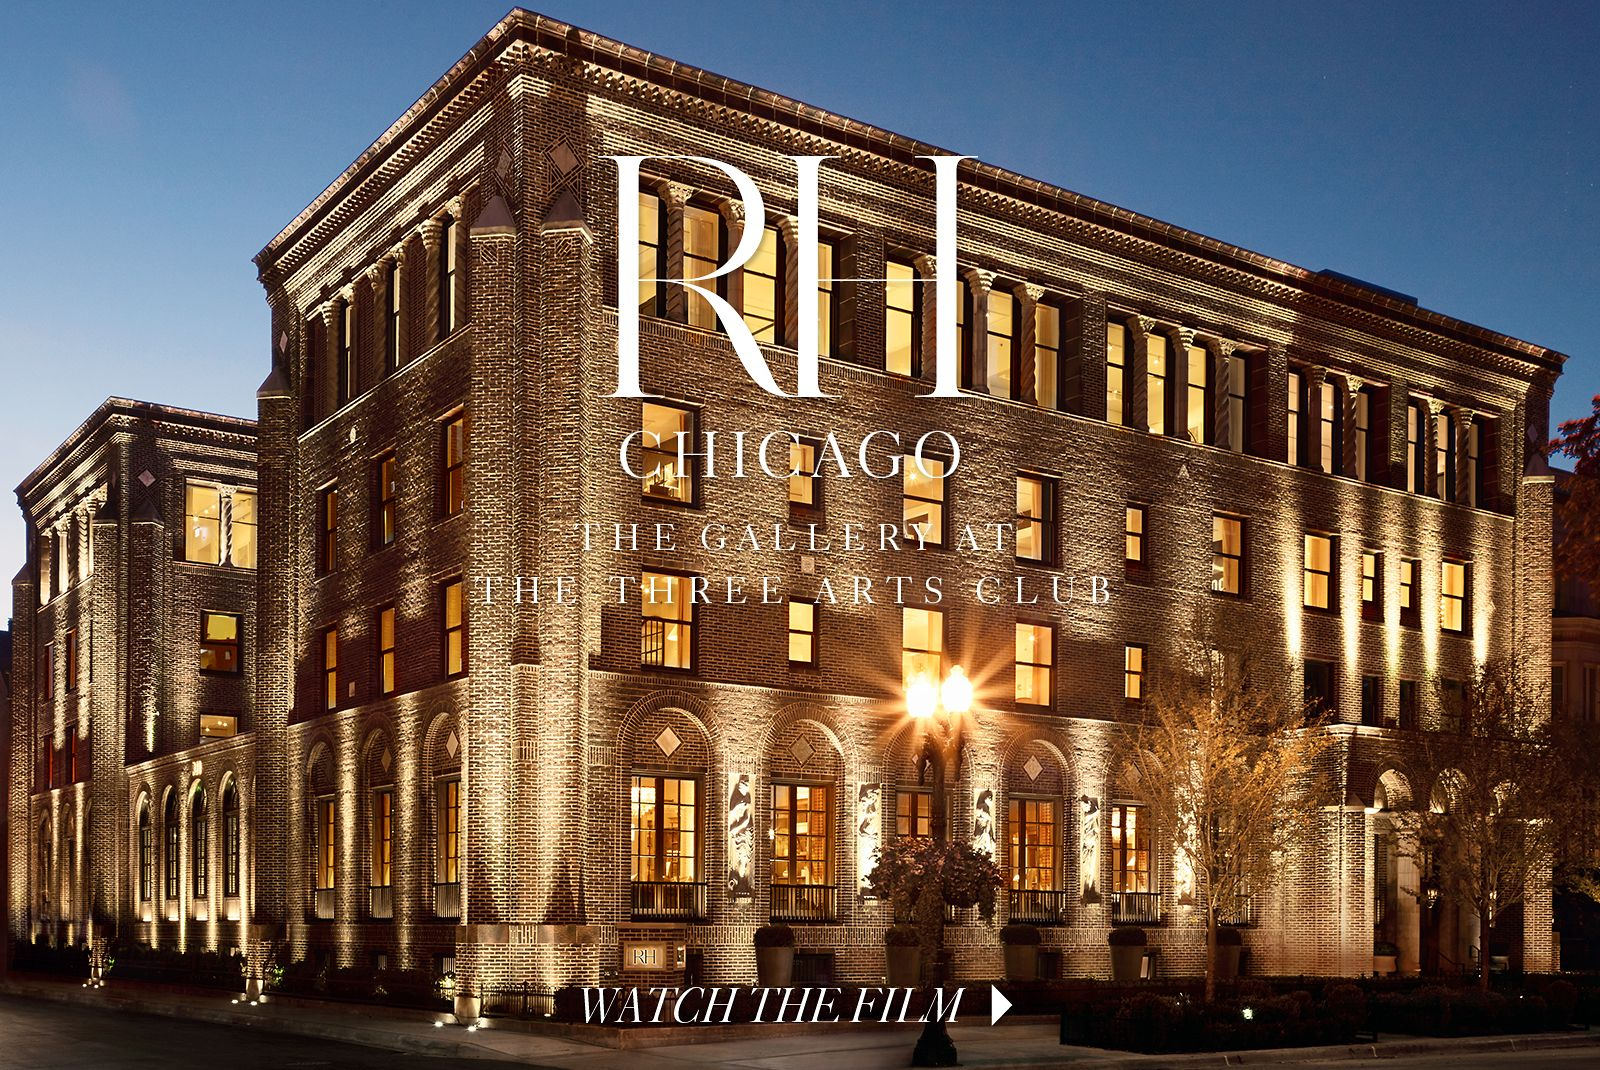 RH Chicago, The Gallery at the Three Arts Club. Watch the Film.